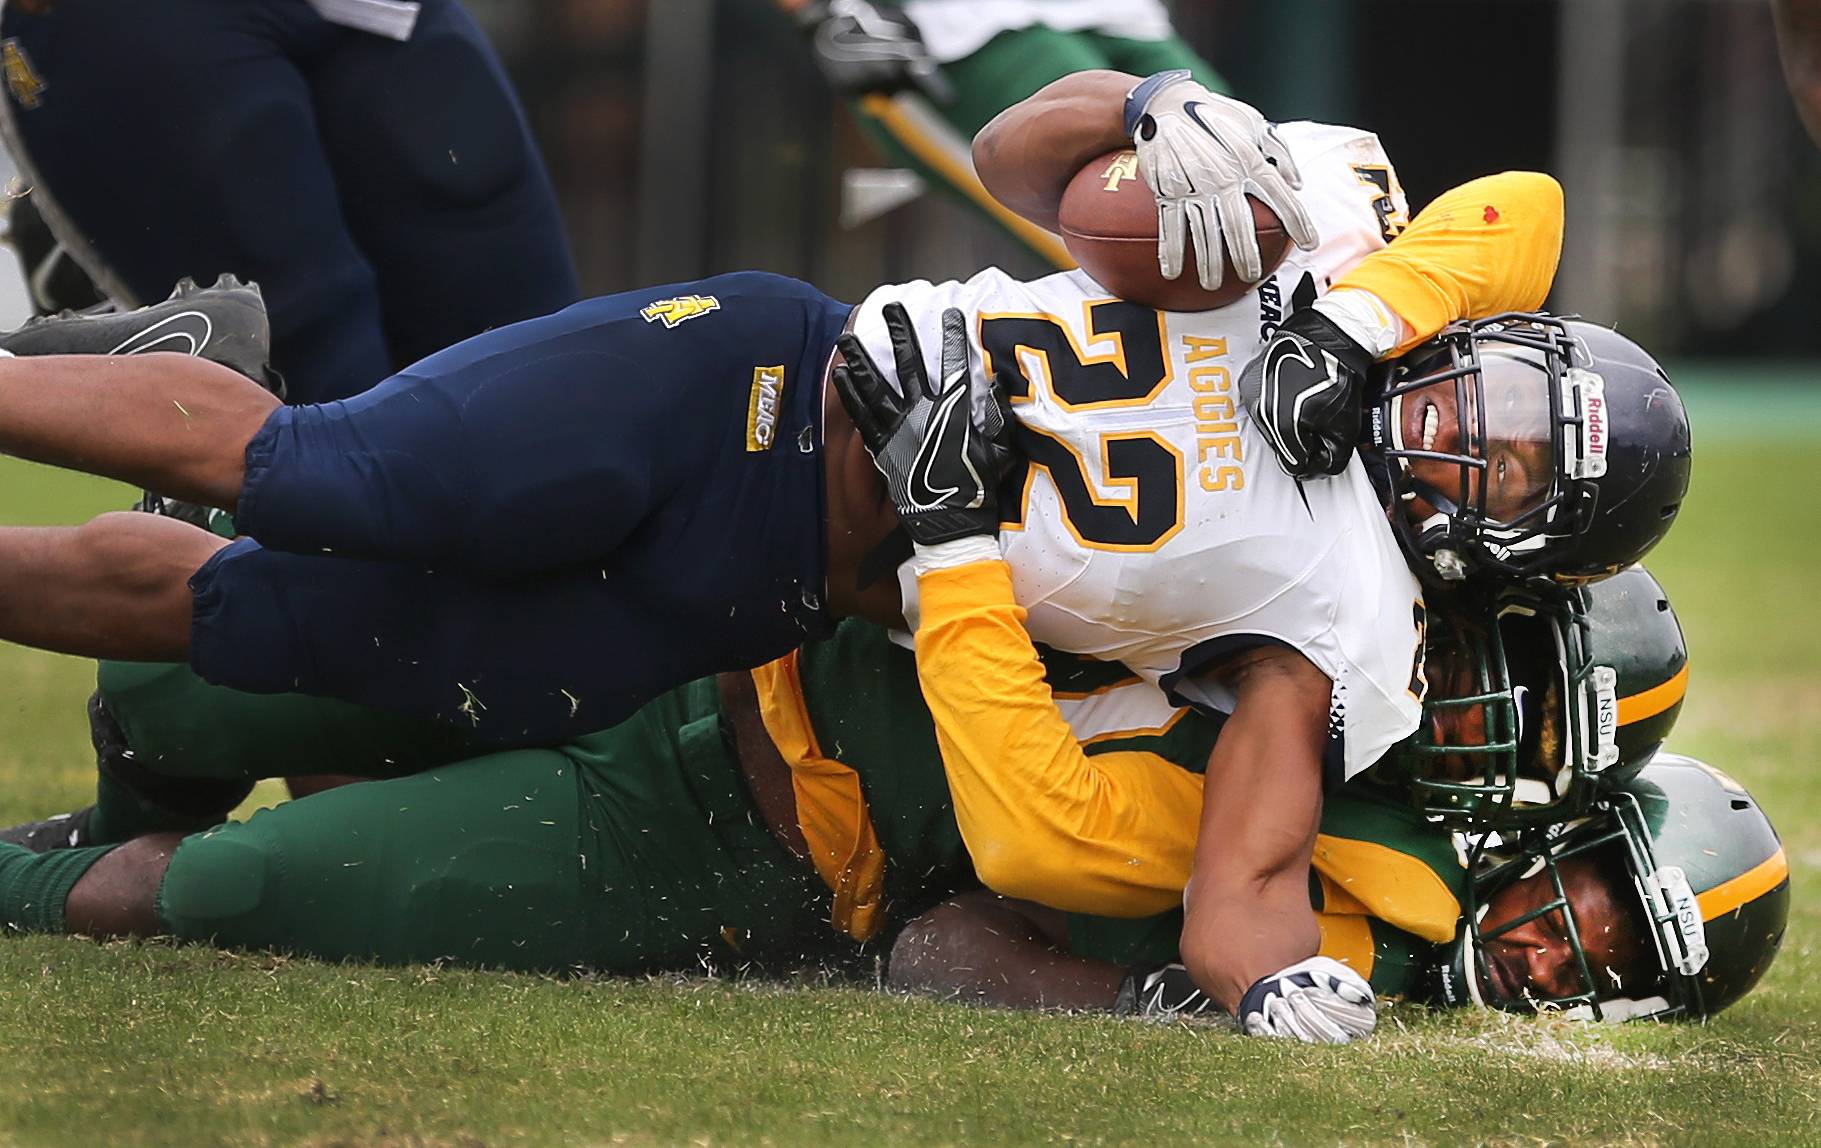 North Carolina A&T's Marquell Cartwright is brought down by Hadji Gaylord as teammate Anton Ashby is pancaked at the bottom during the Spartans' 35-7 loss, Saturday, Nov. 4, 2017 at Dick Price Stadium in Norfolk.